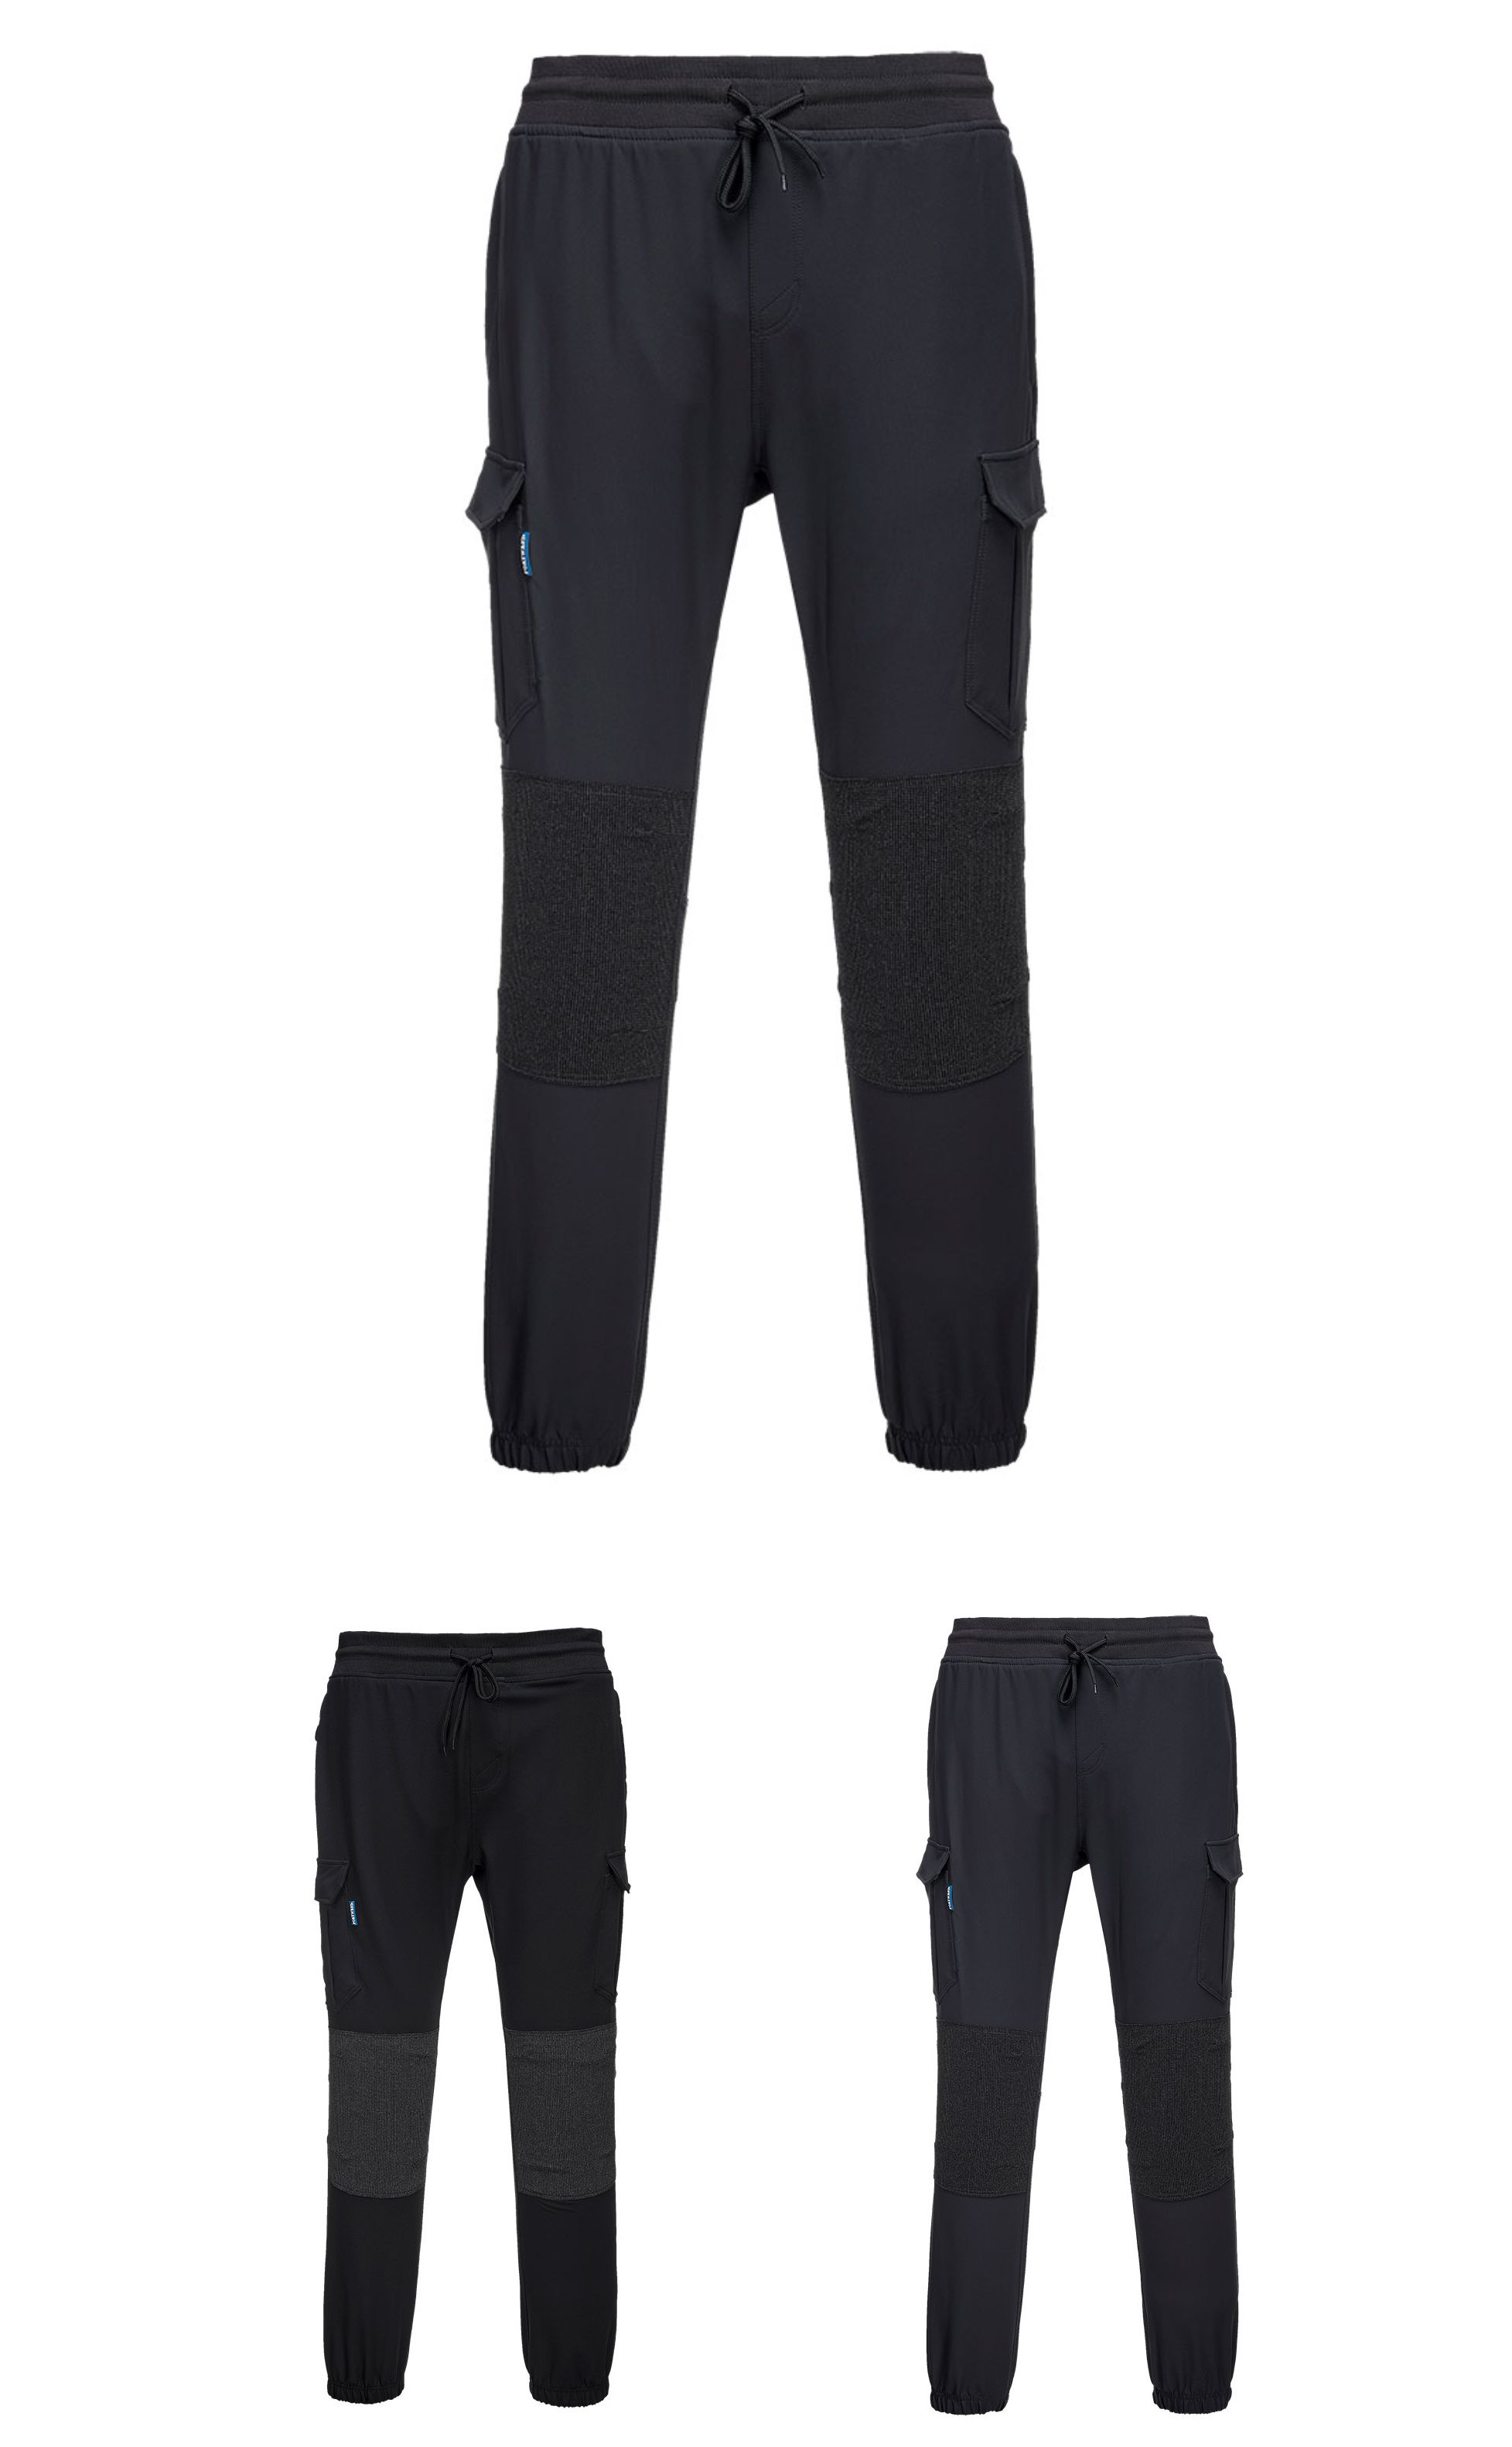 T803 Portwest KX3 Flexi Trousers